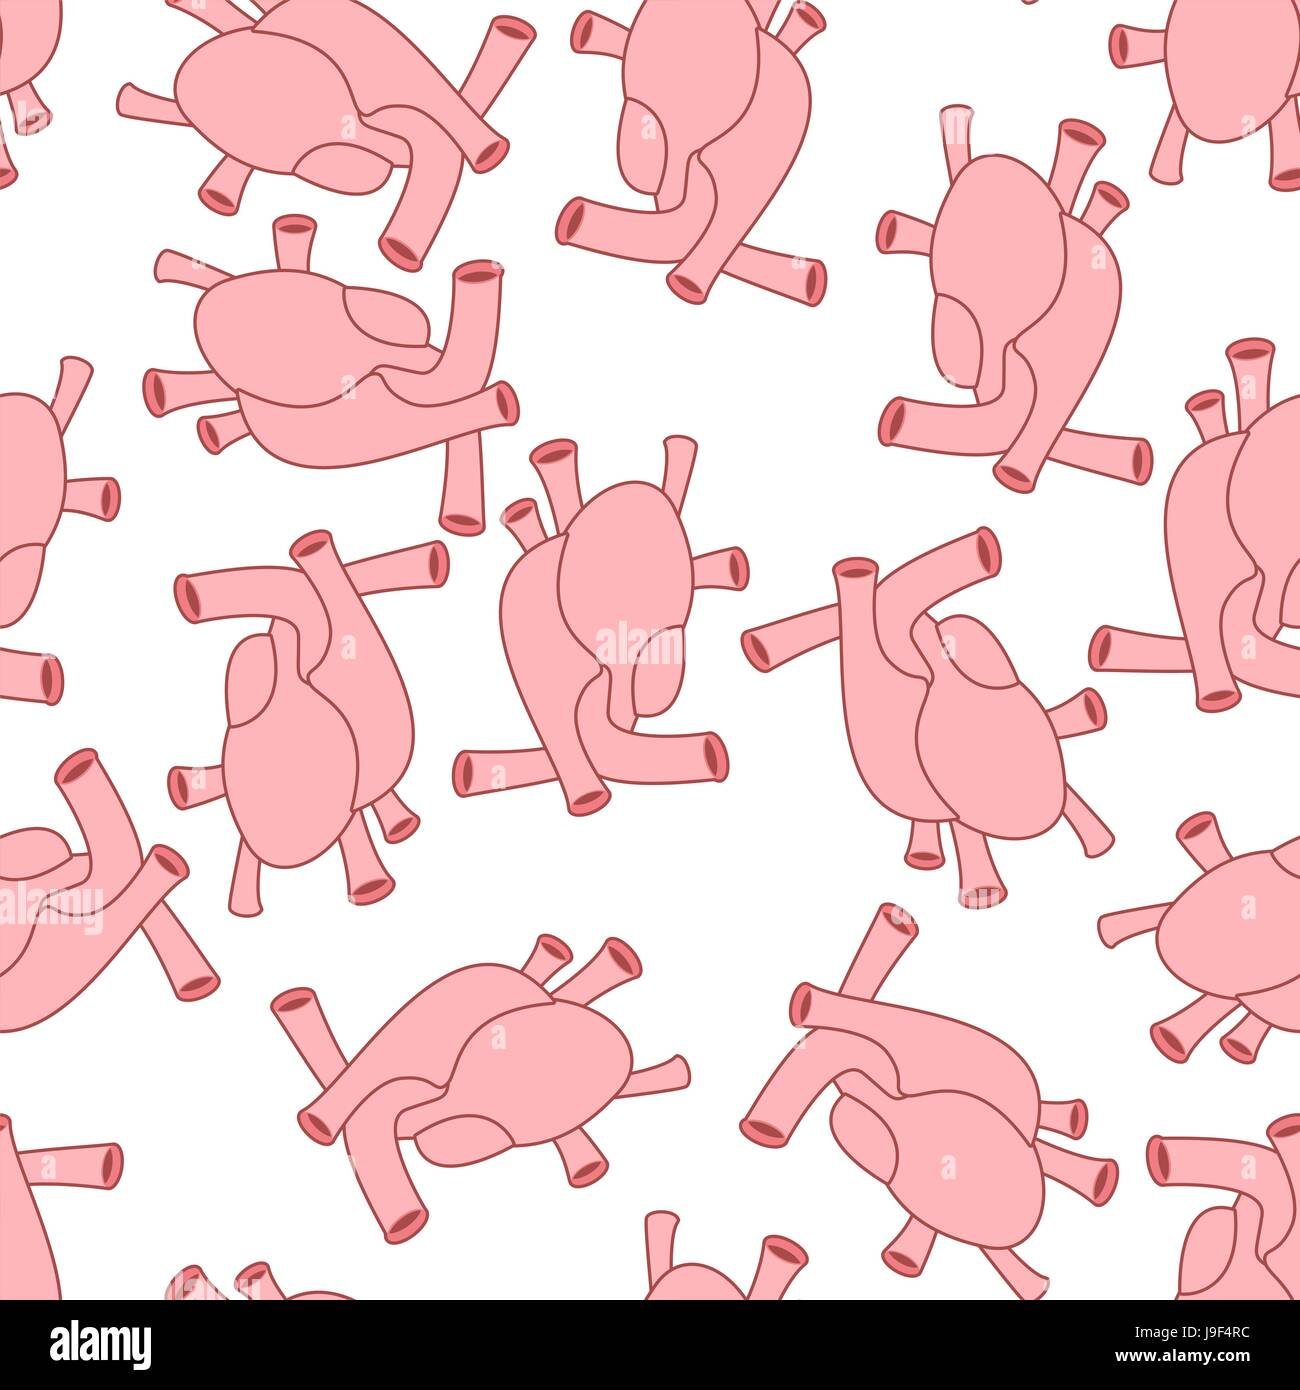 Heart anatomy body seamless pattern. Atrial and ventricular pattern ...